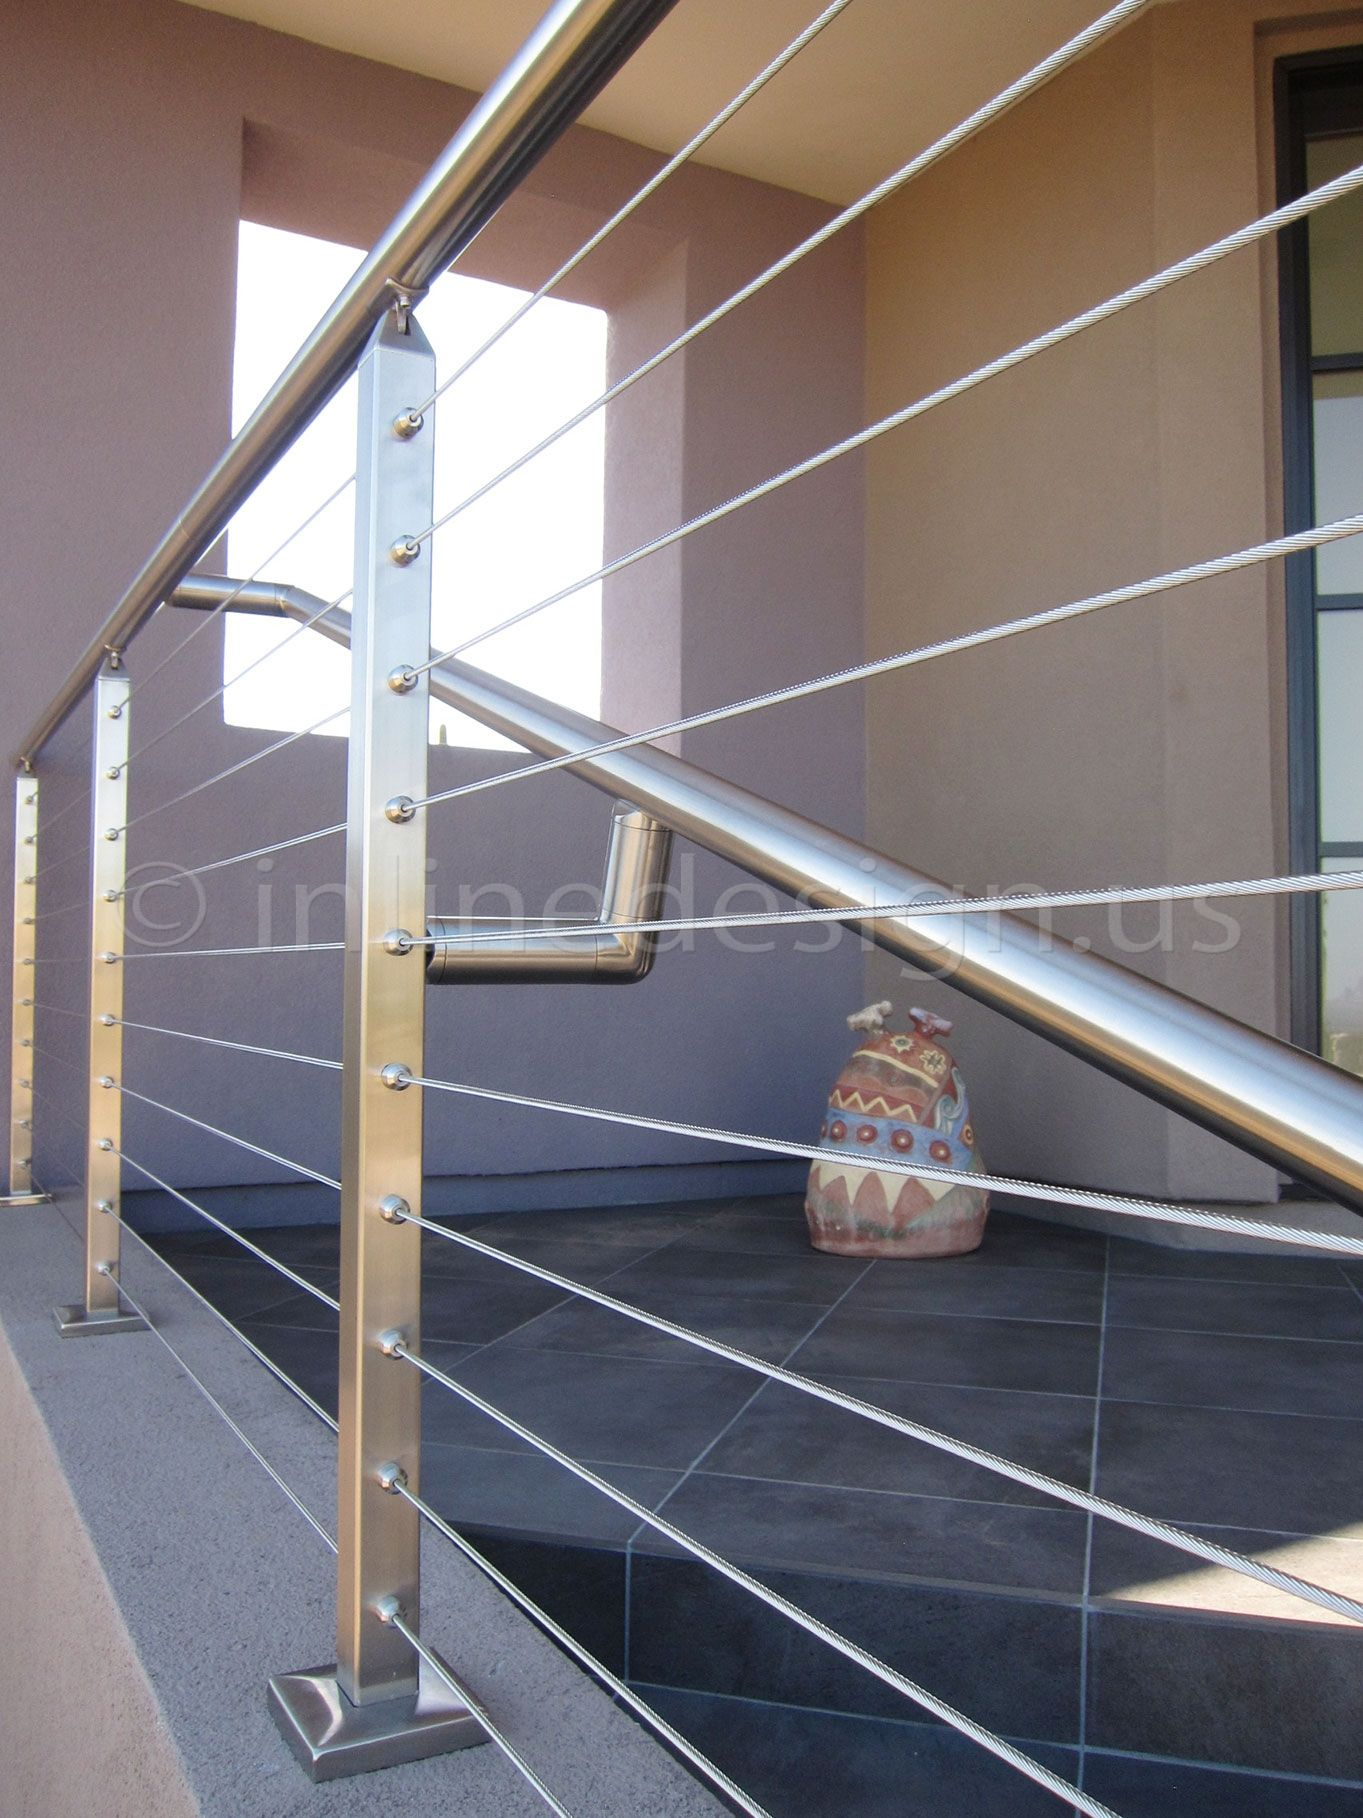 Stainless Steel Cable and Glass Railing ... | Pasamanos ...